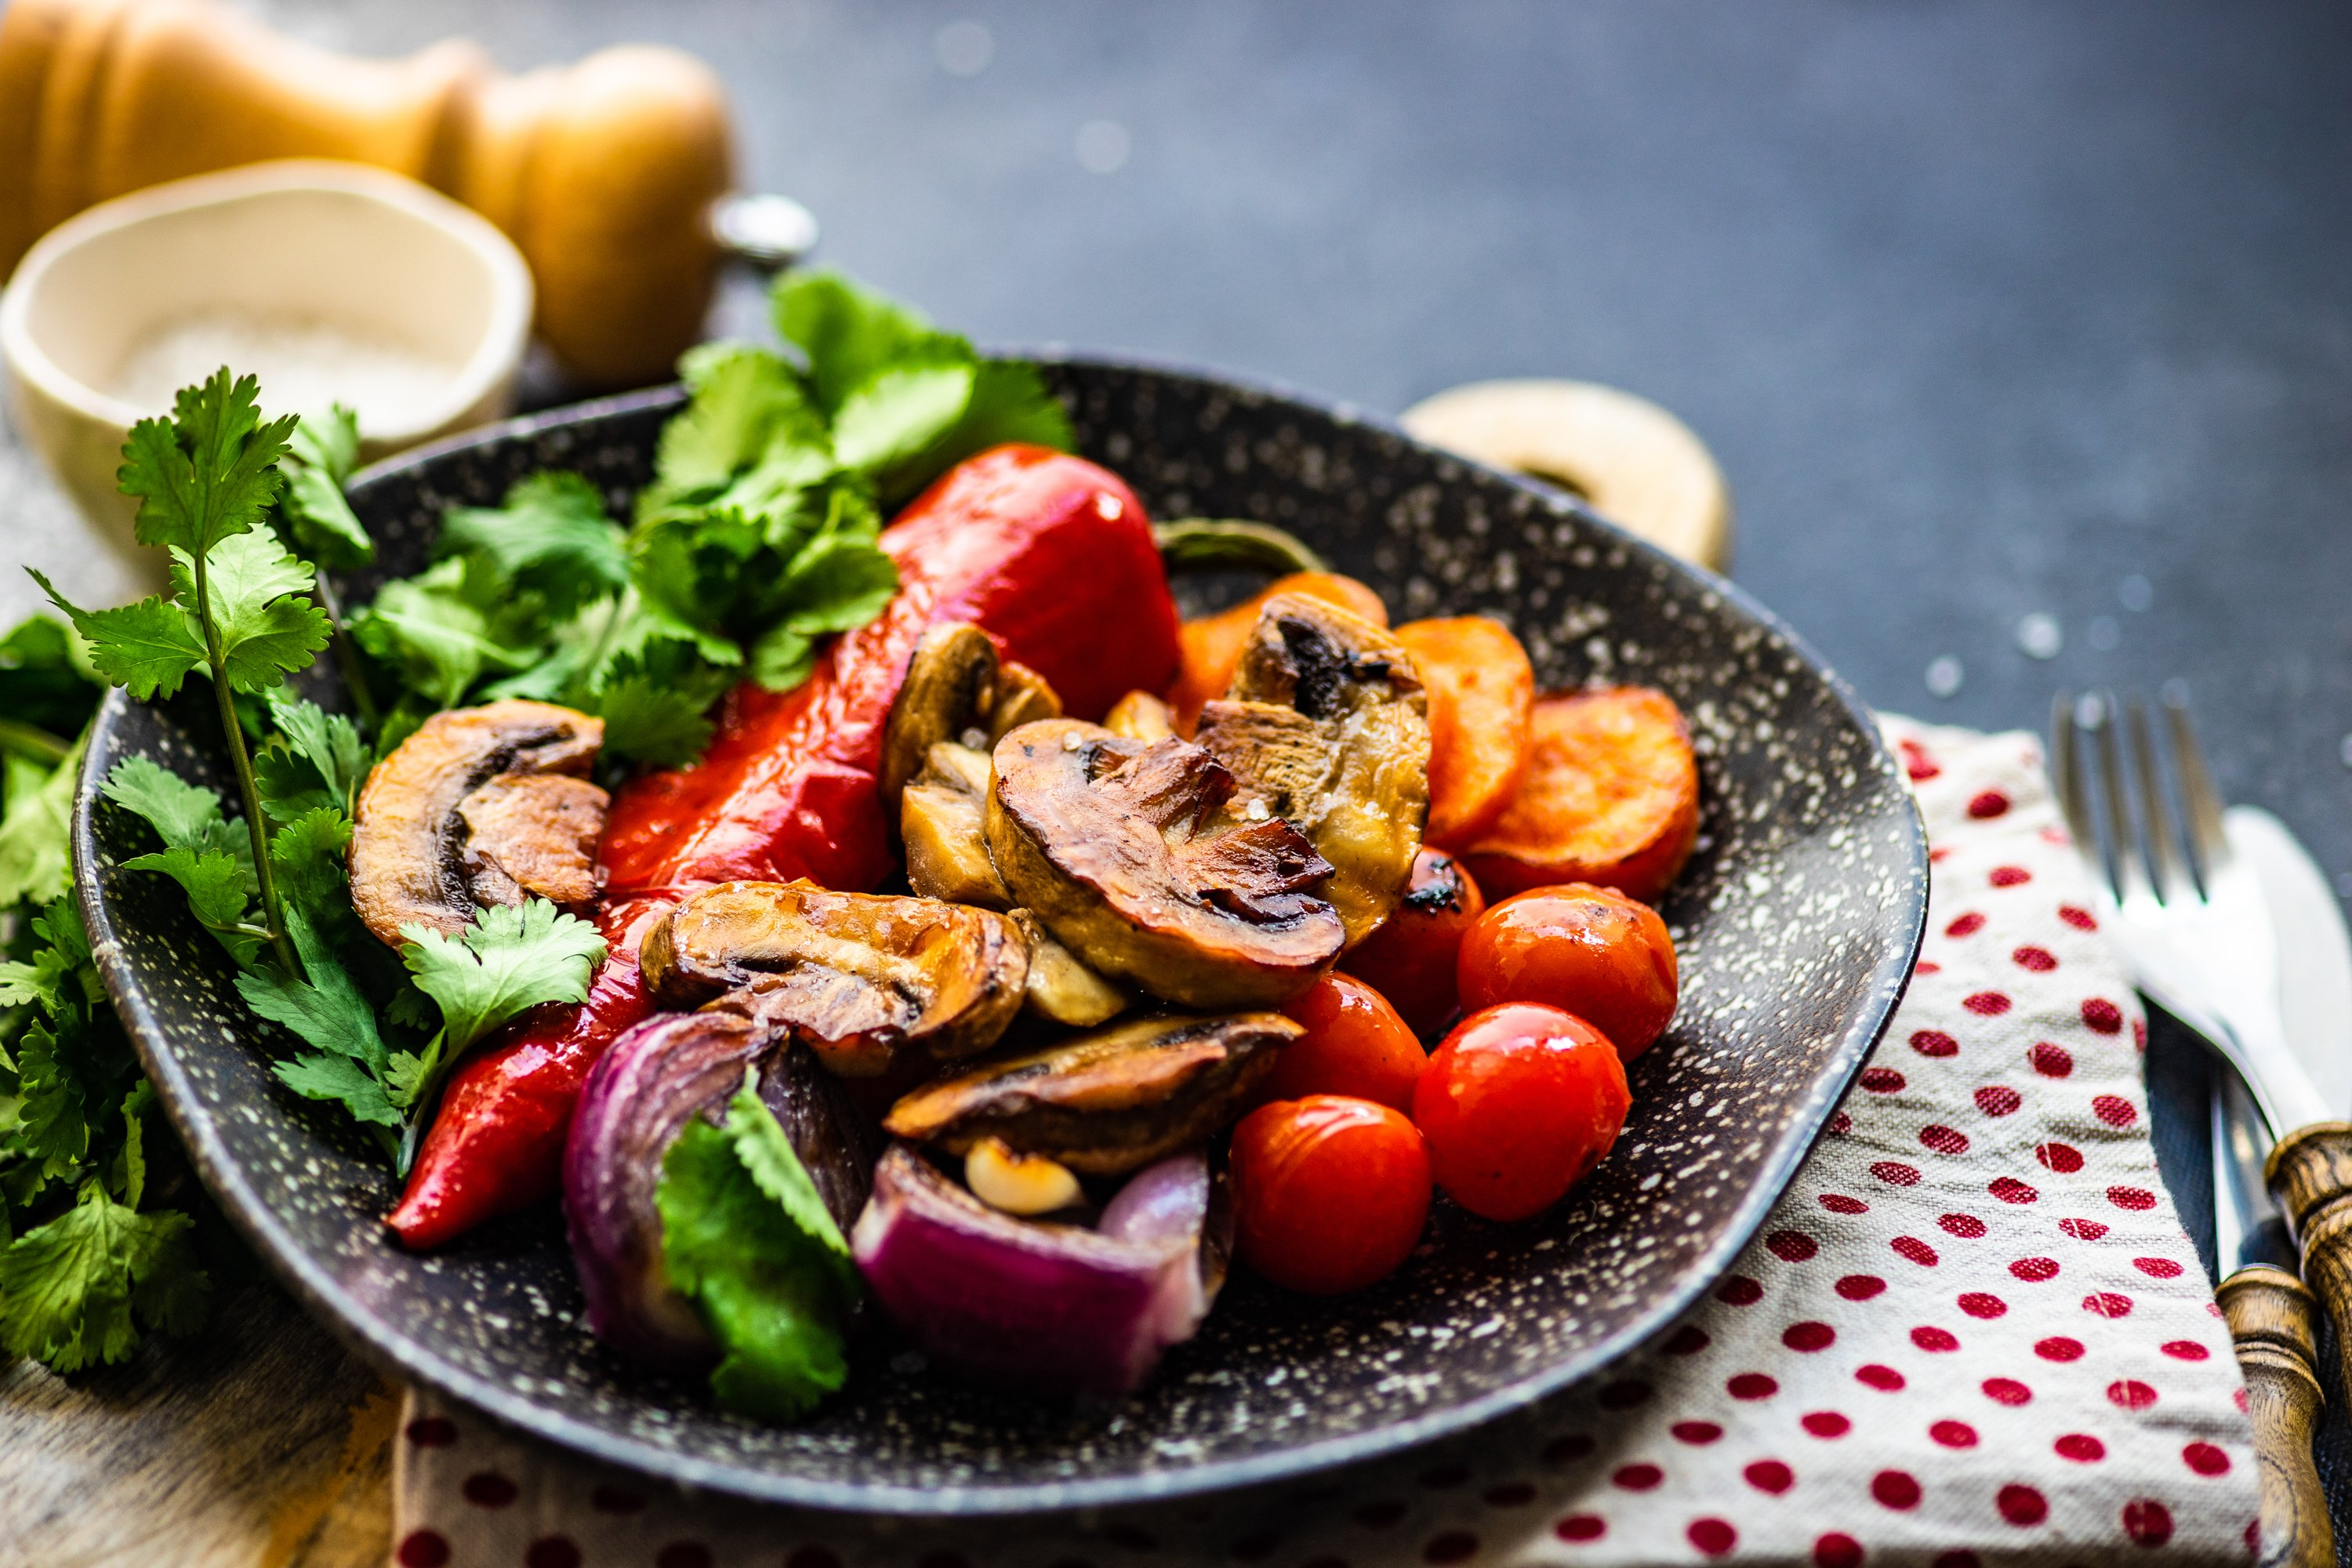 Healthy food concept with organic grilled vegetables example image 1